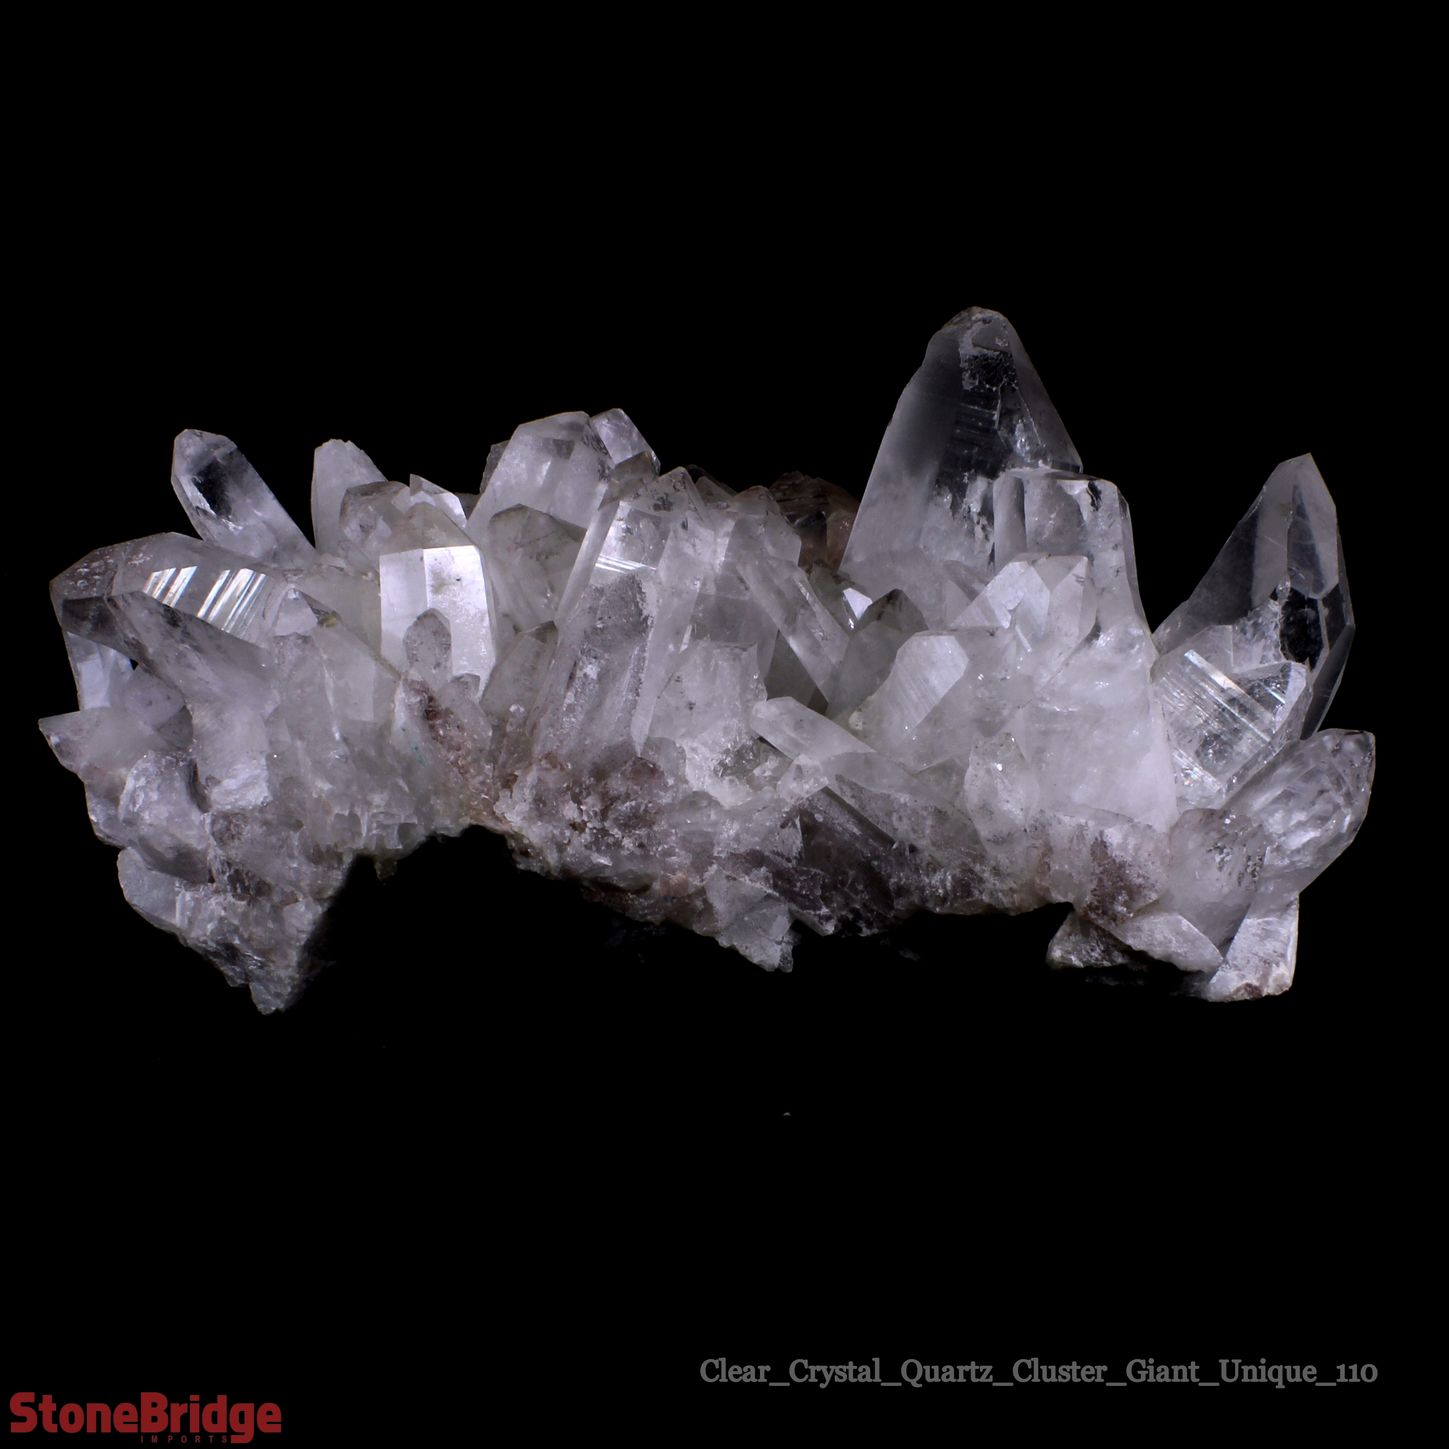 CLCRU110_Clear_Crystal_Quartz_Cluster_Giant_Unique_1101.jpg